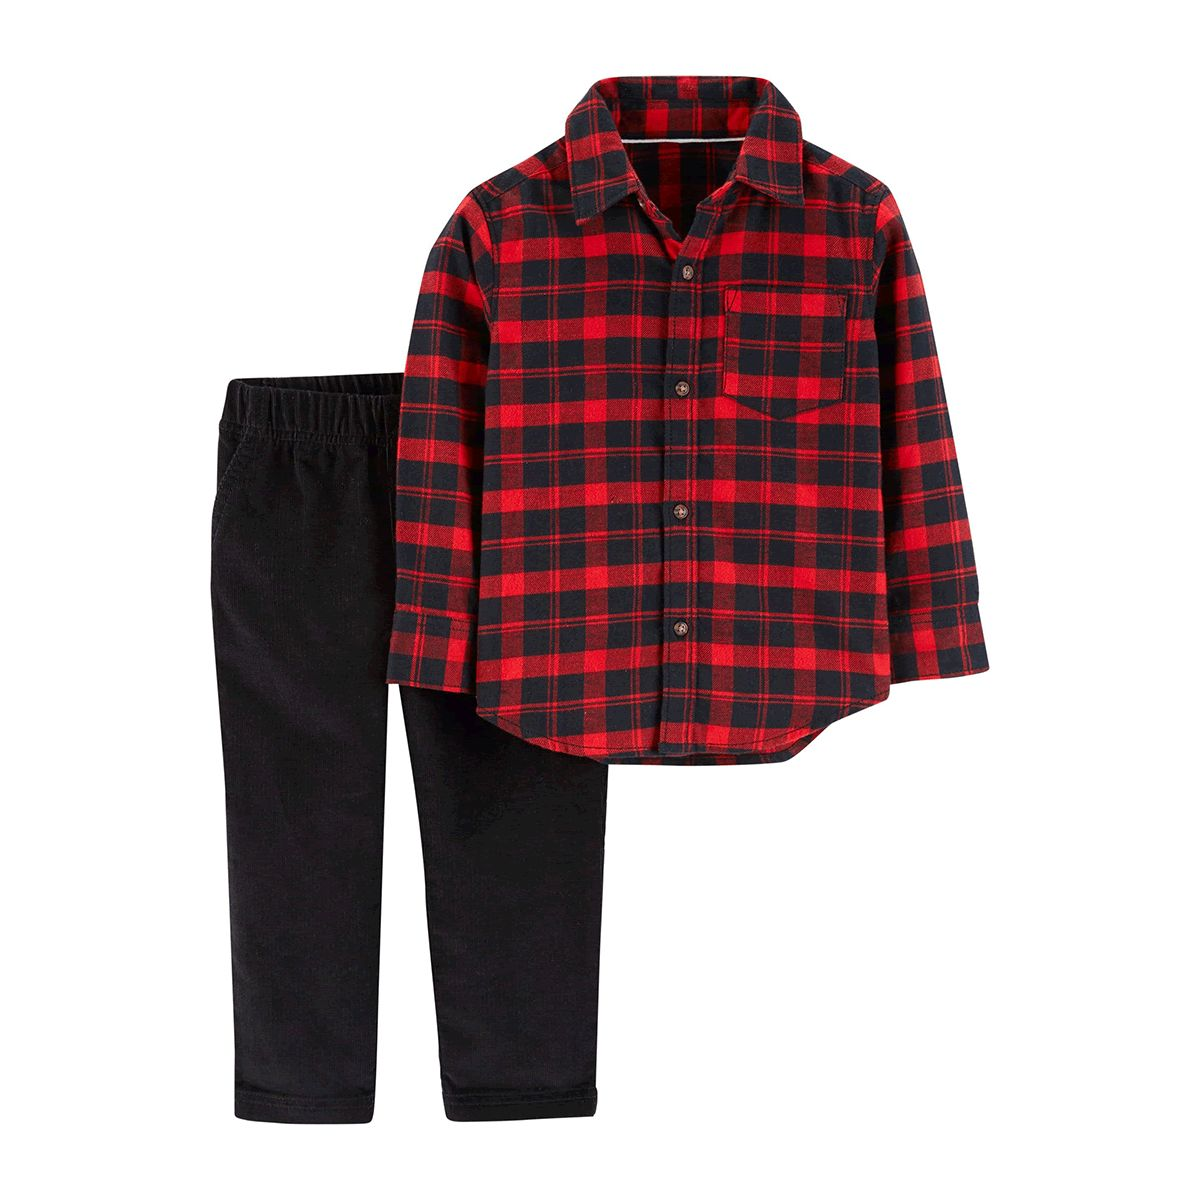 Toddler Boys 2t 5t Carters Baby Clothes Macys